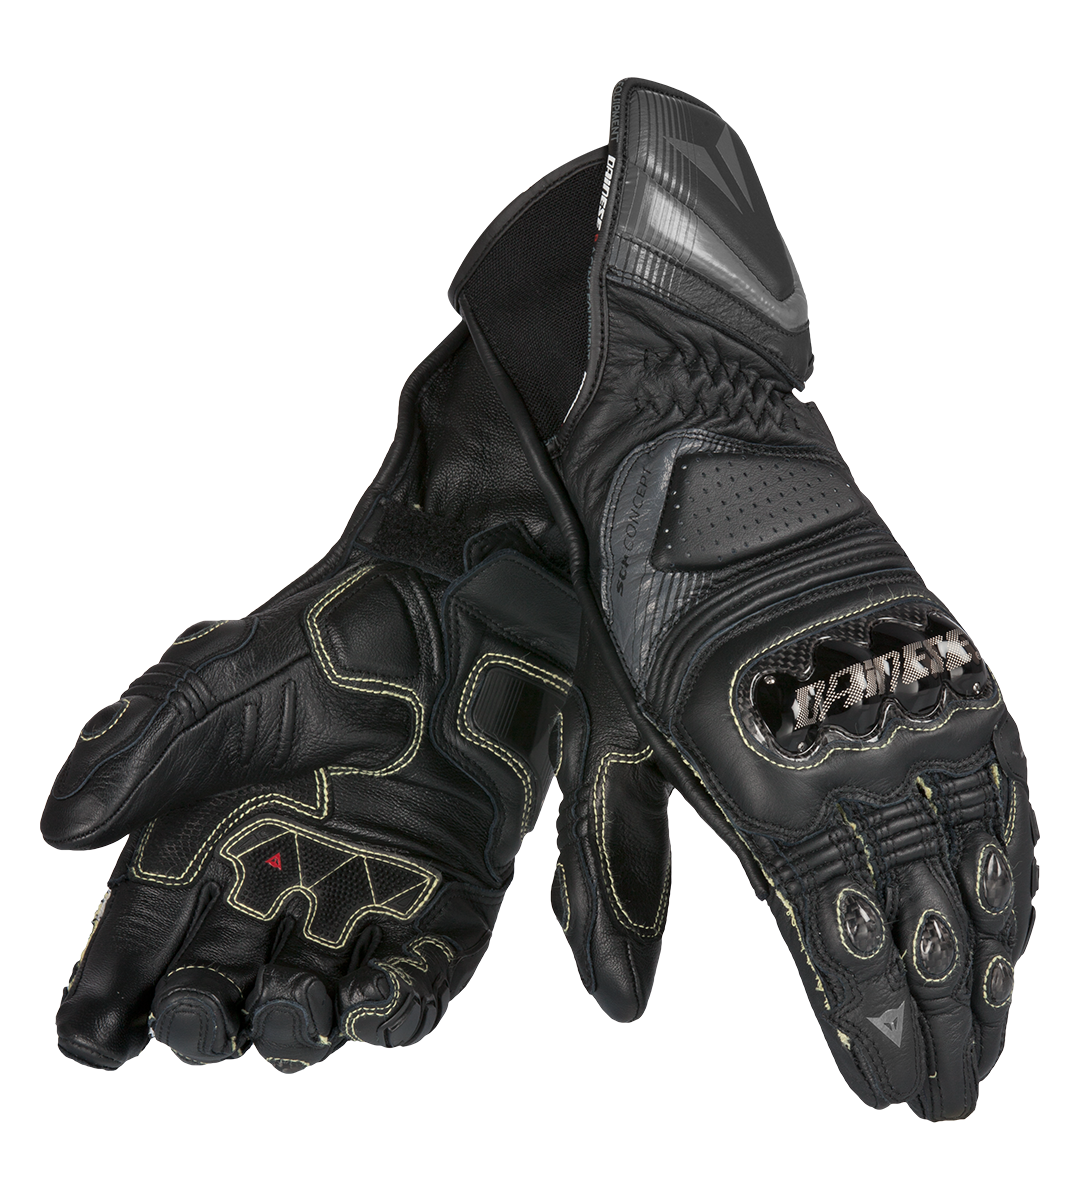 Motorcycle gloves discount - Dainese Racing Leather Motorcycle Gloves